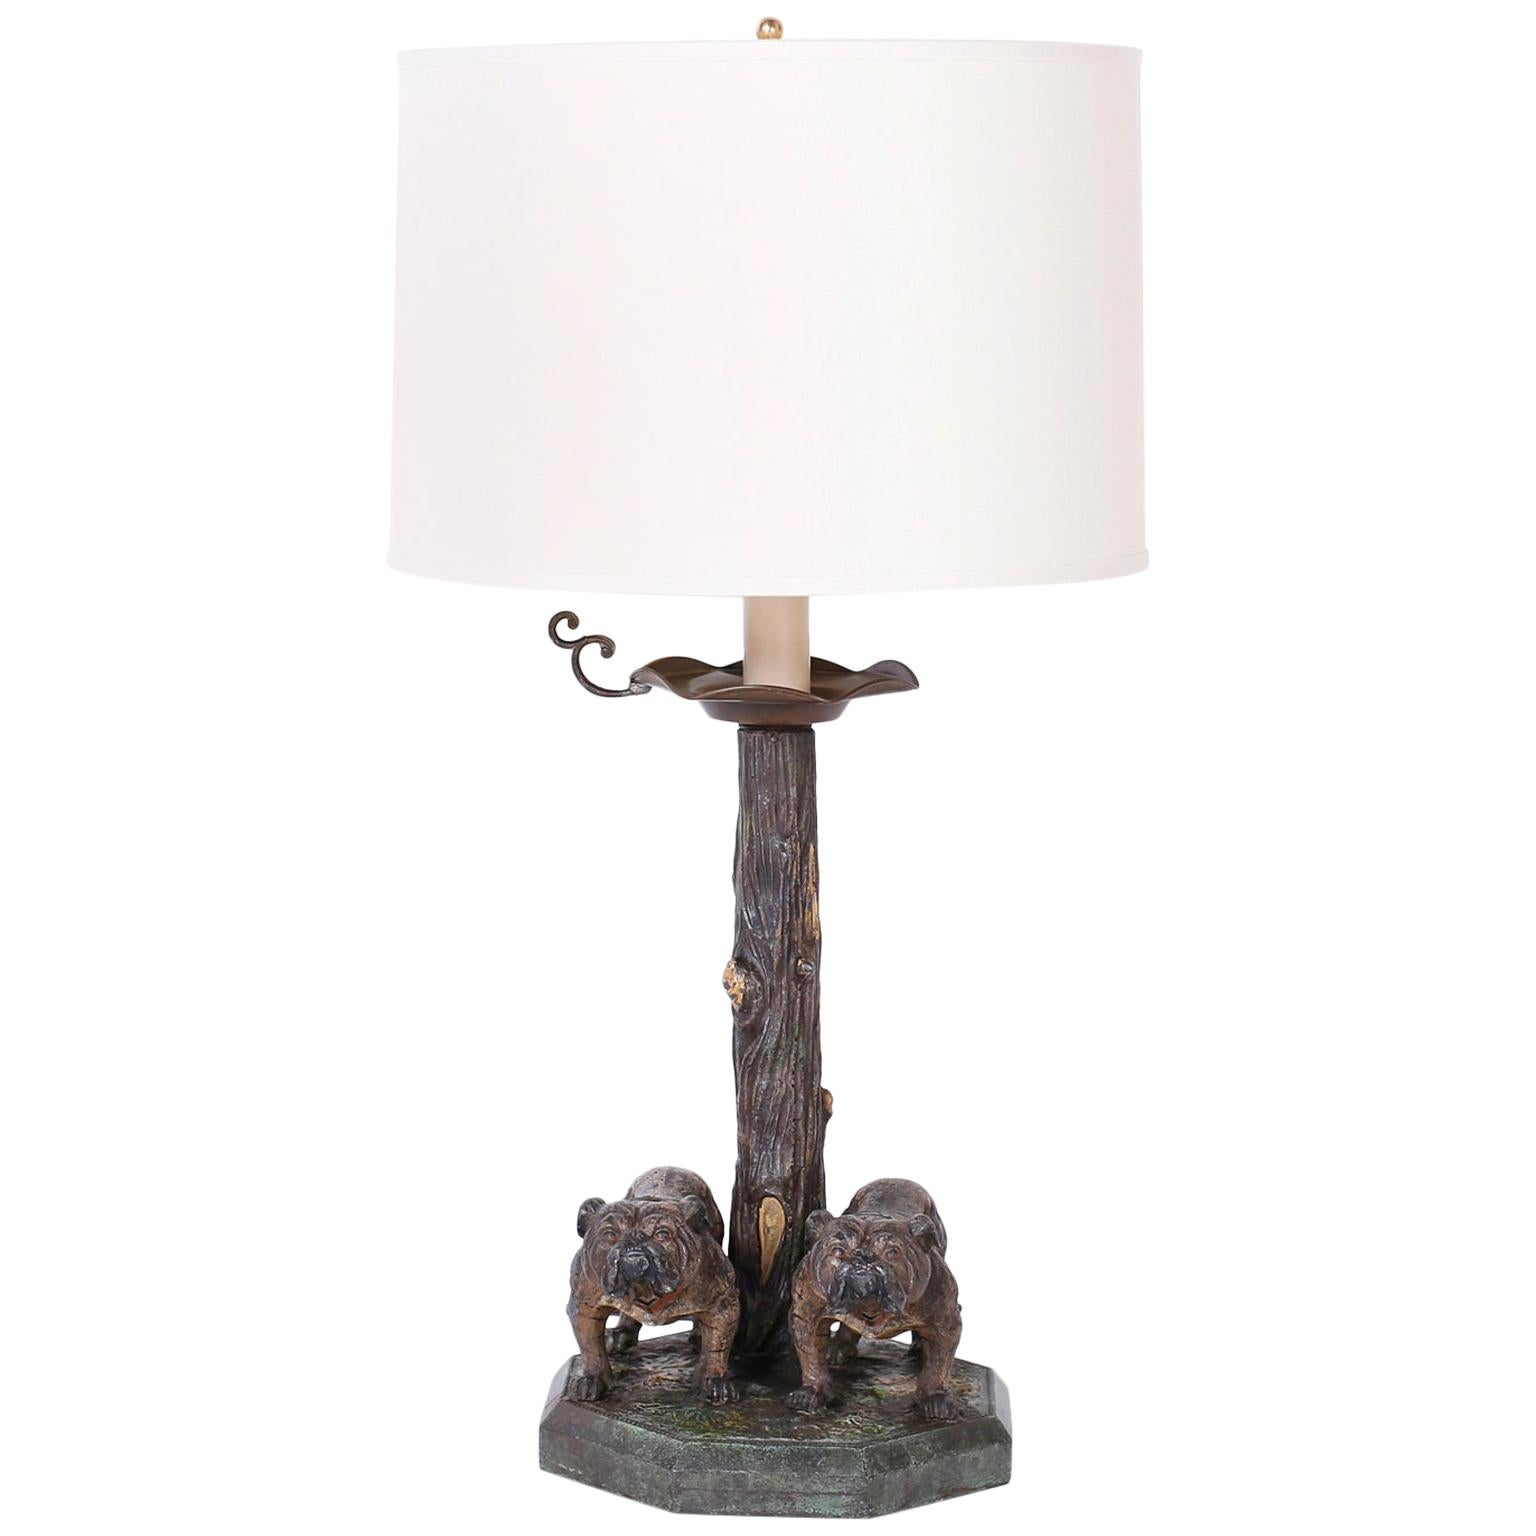 Antique Cold Painted Bronze Table Lamp with Bulldogs